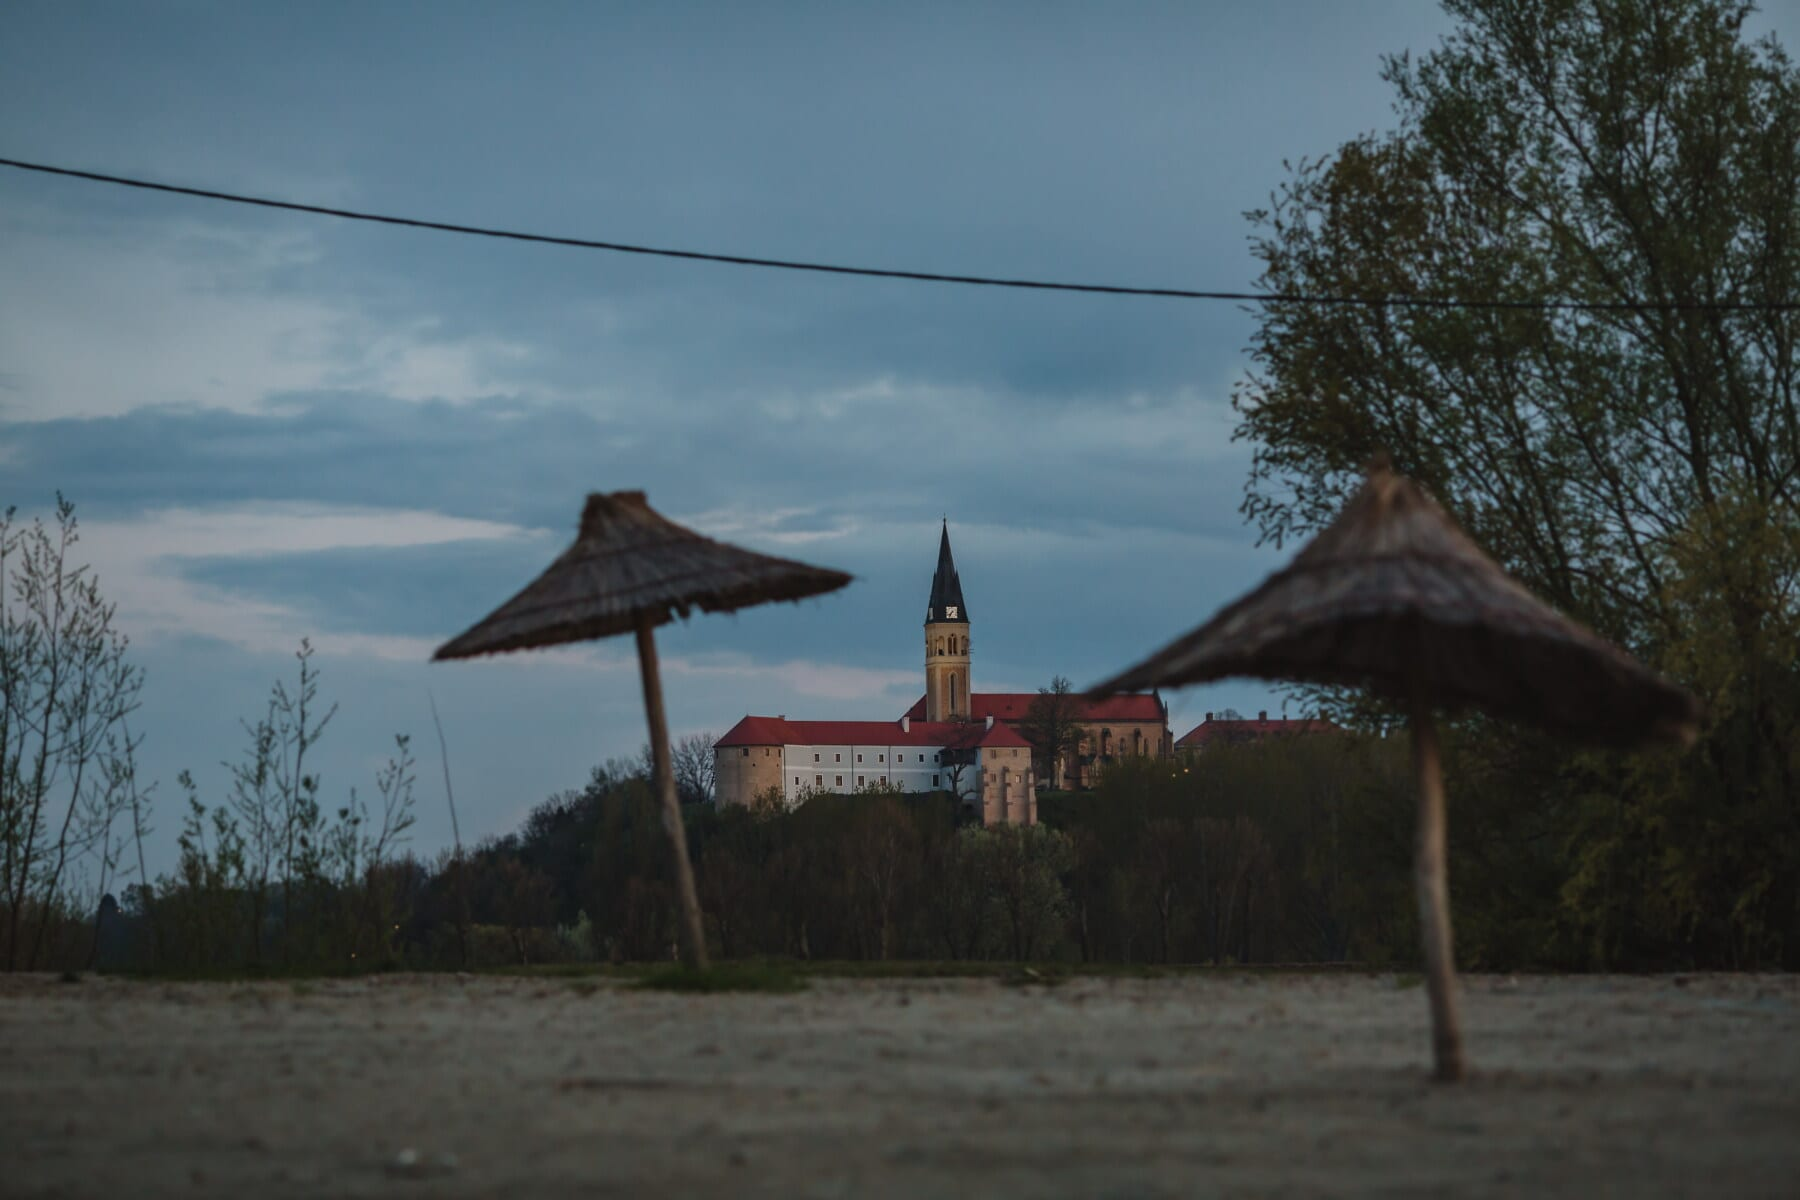 dusk, parasol, beach, church tower, medieval, monastery, tree, landscape, umbrella, home